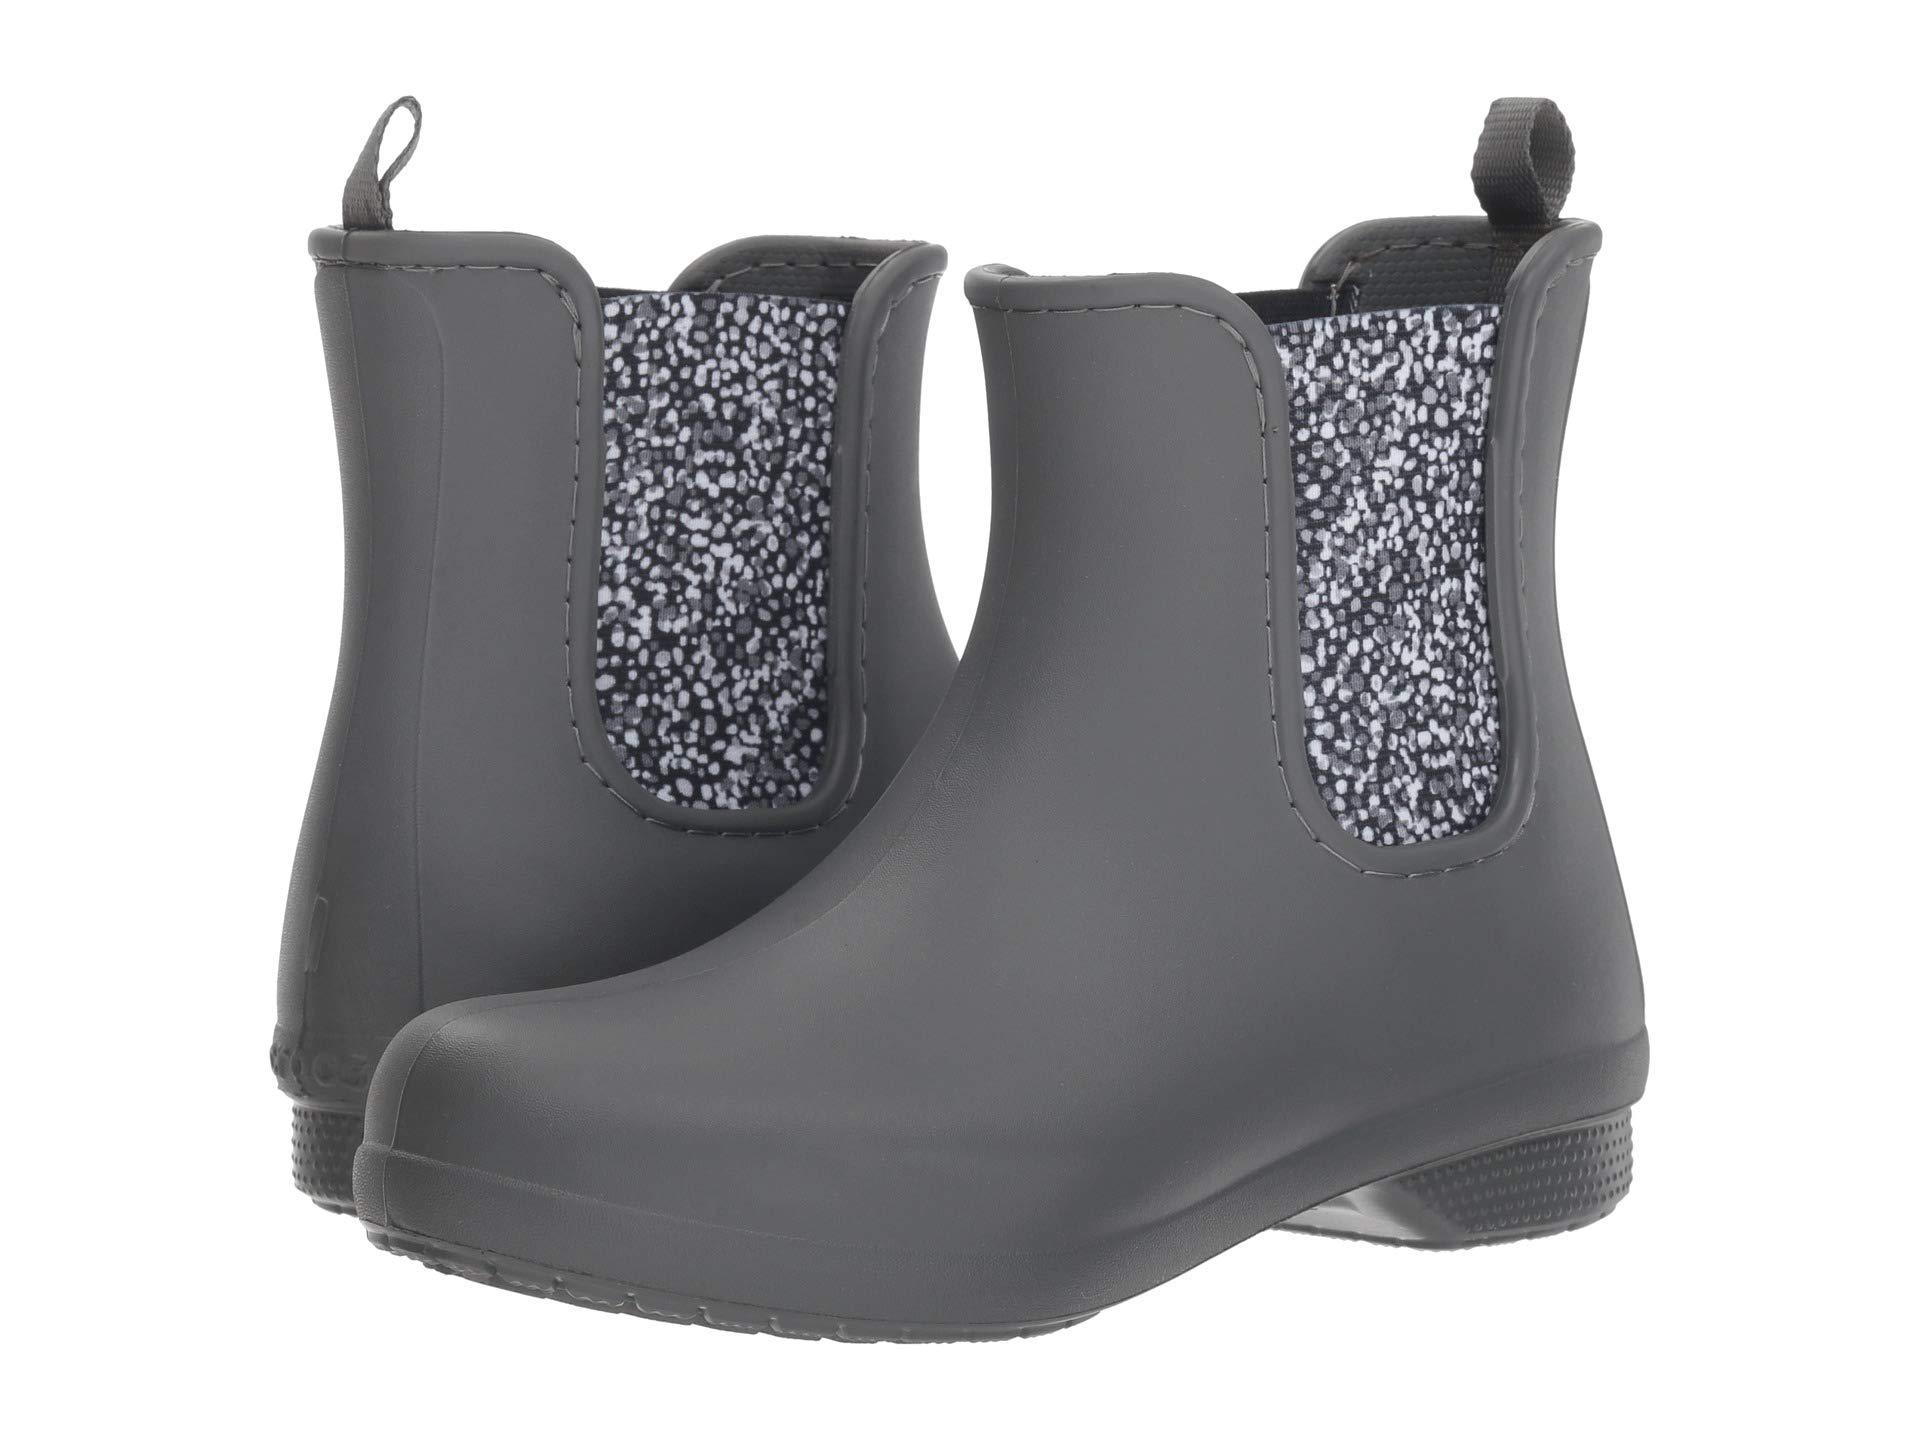 ac498468d99aff Lyst - Crocs™ Freesail Chelsea Rain Boot in Gray - Save 24%